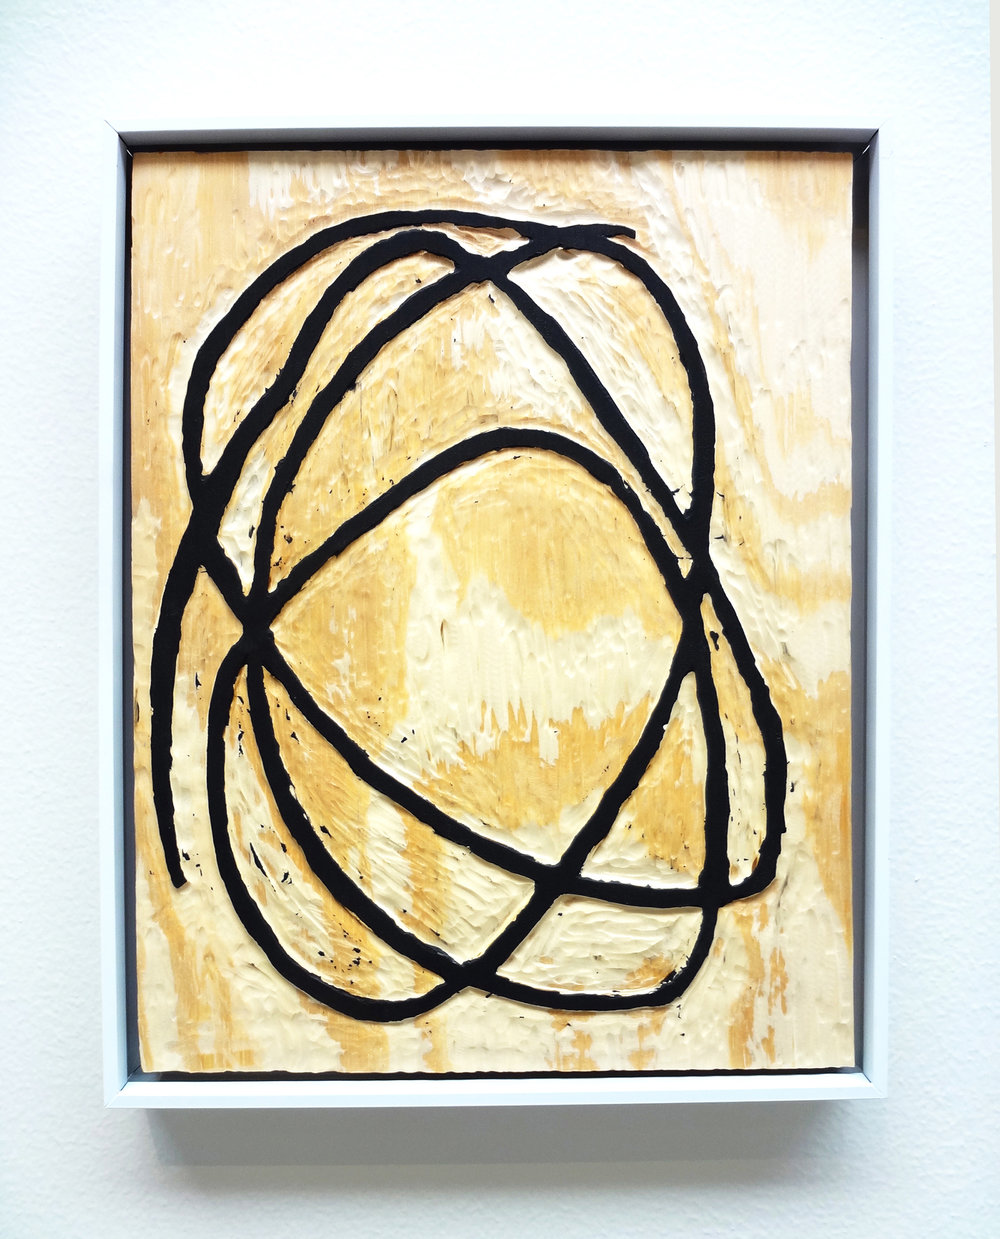 Meghan Gerety  Untitled 07 , 2015 blockprint ink on plywood  15 x 12 in. framed in aluminum